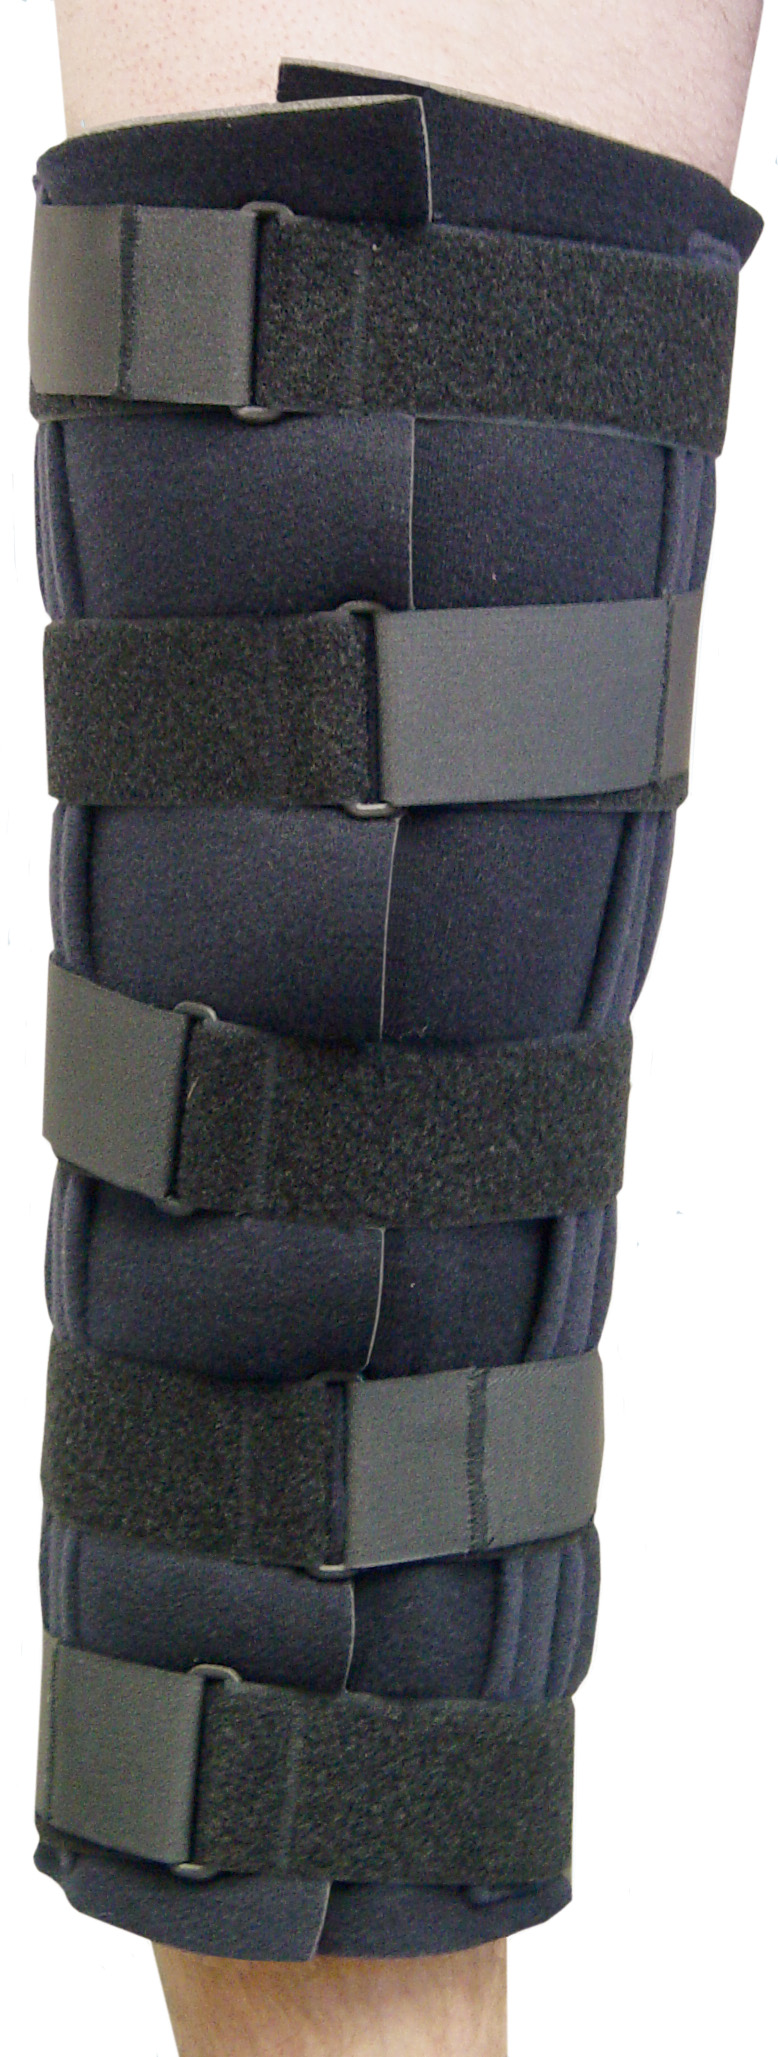 universal-foam-knee-immobilizer-19in-200140-ossur-os378585-2.jpg